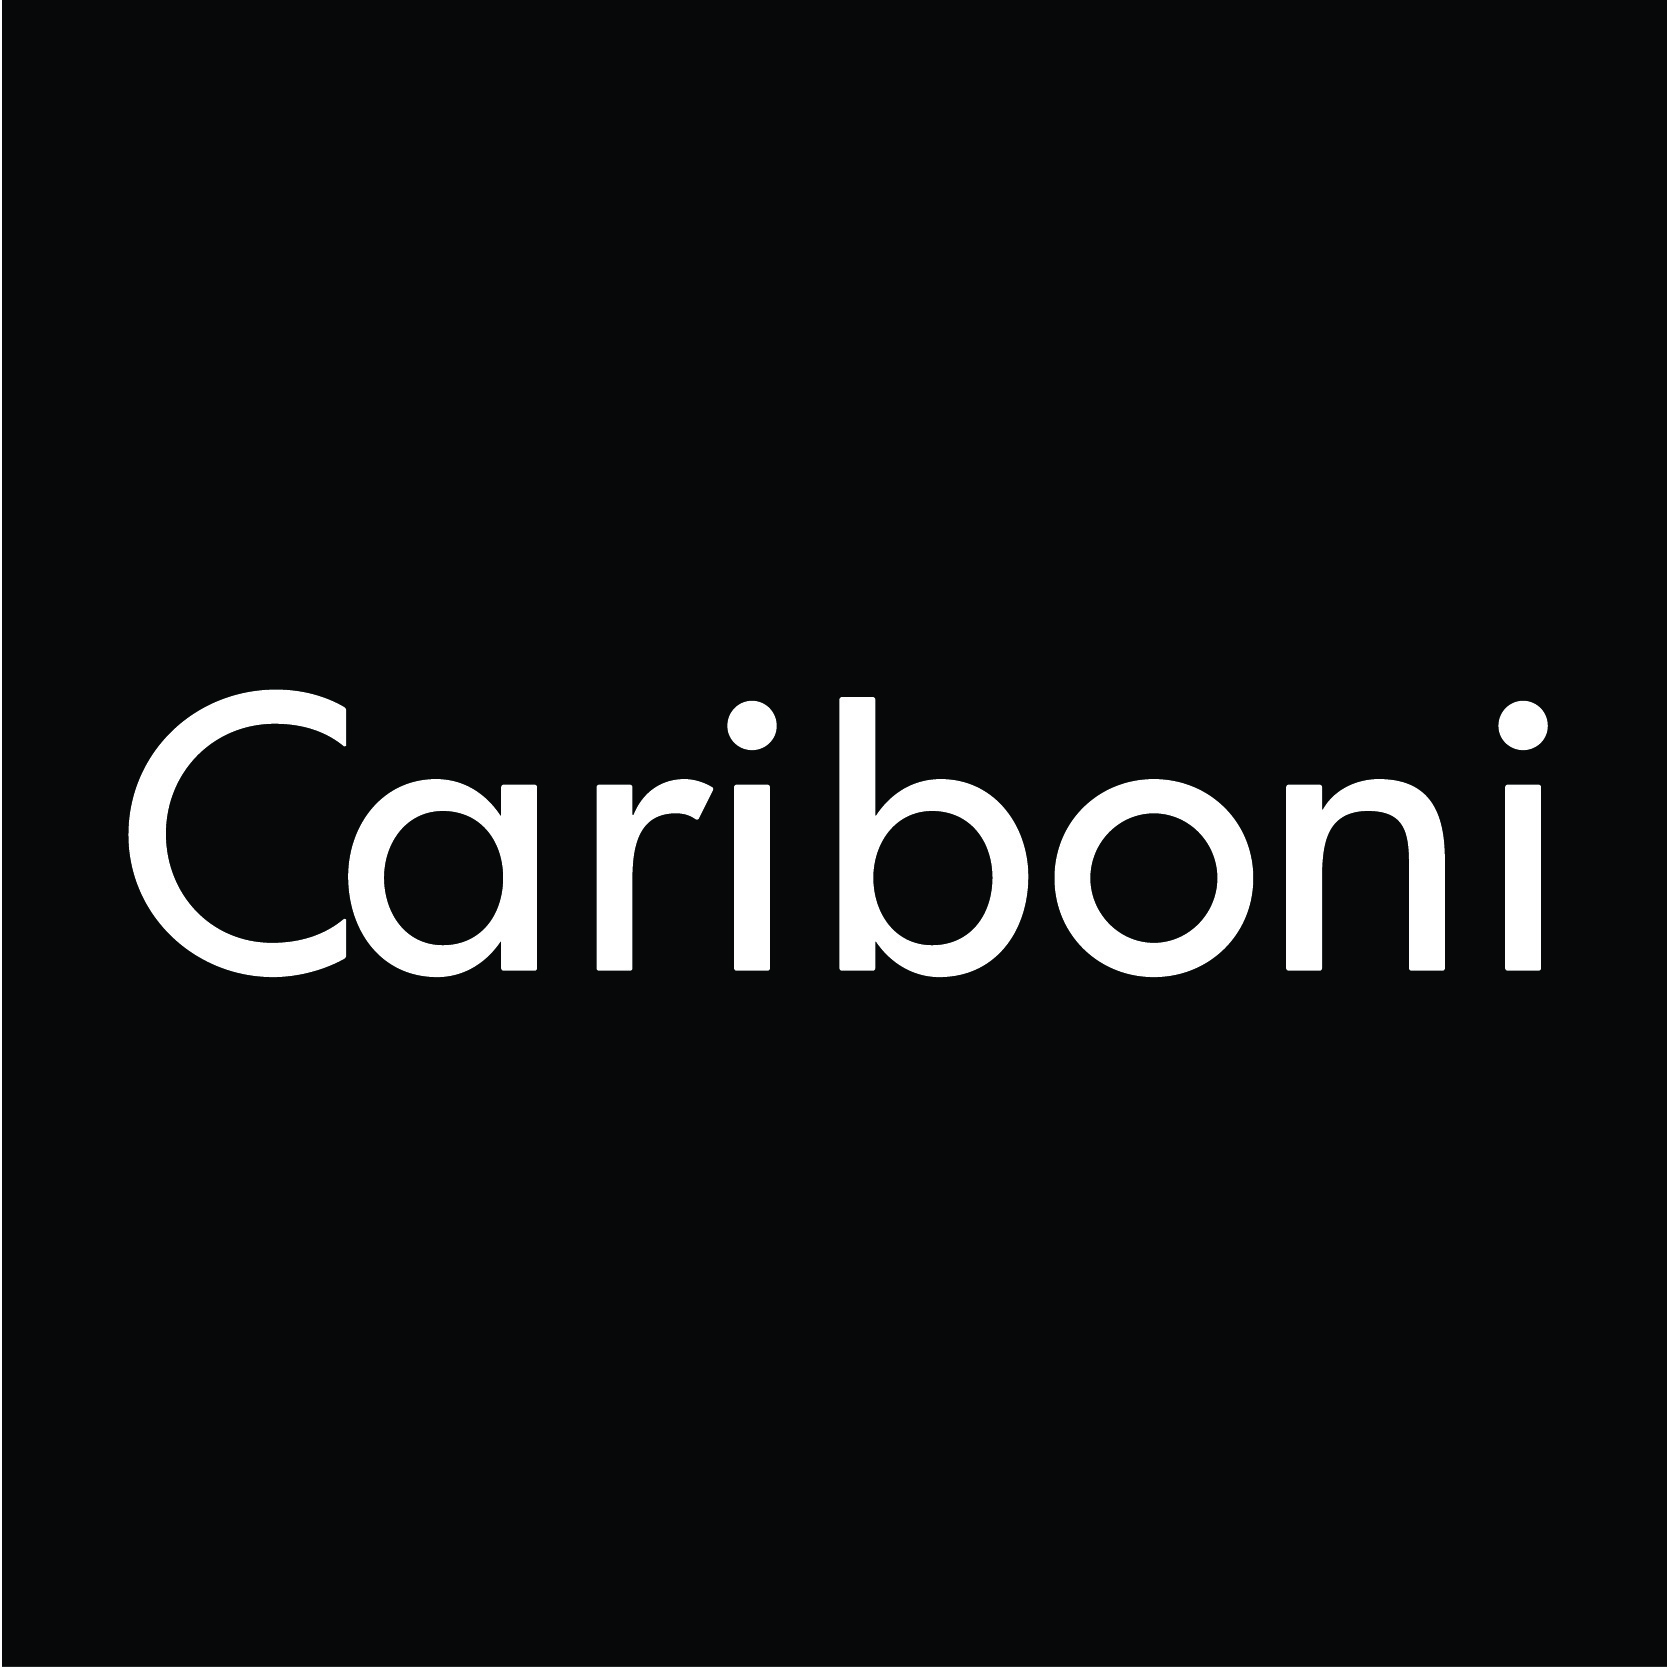 CARIBONI   INNOVATIVE,HIGH PERFORMANCE  OUTDOOR, INDOOR AND STREET LIGHTING PRODUCTS.